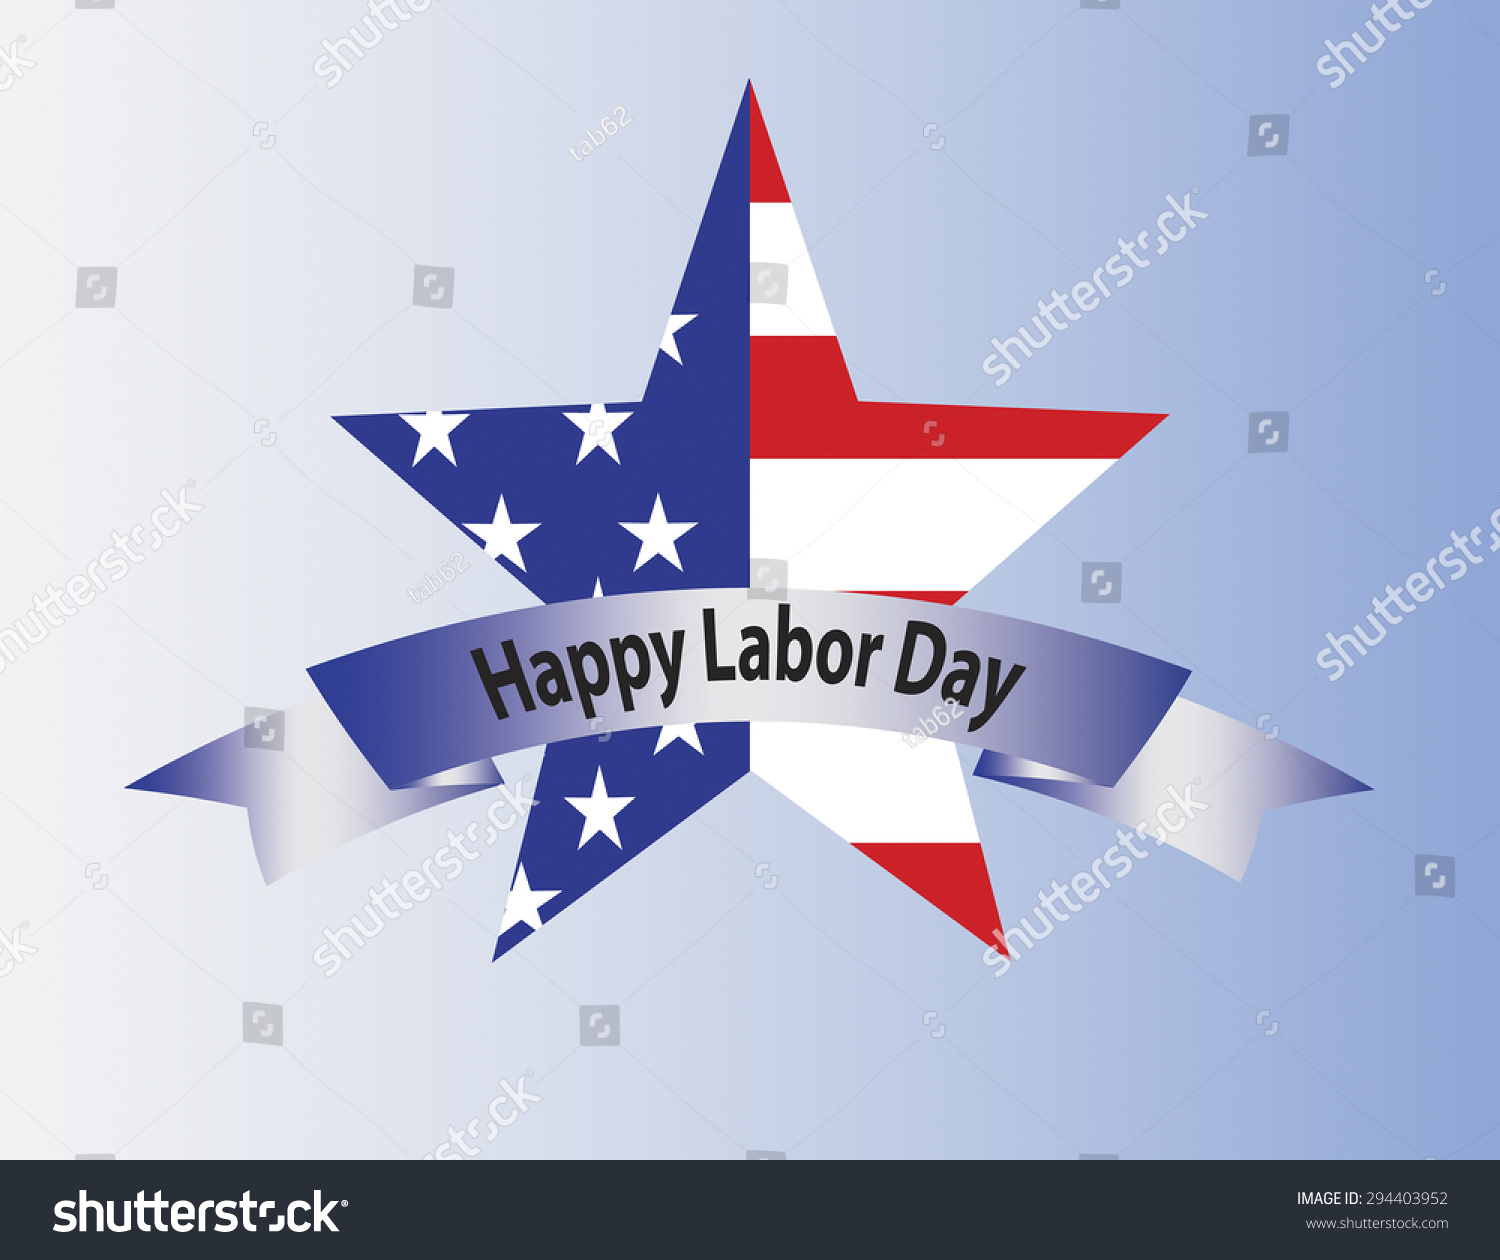 star shape usa flag inside happy labor day text on ribbon save to a lightbox